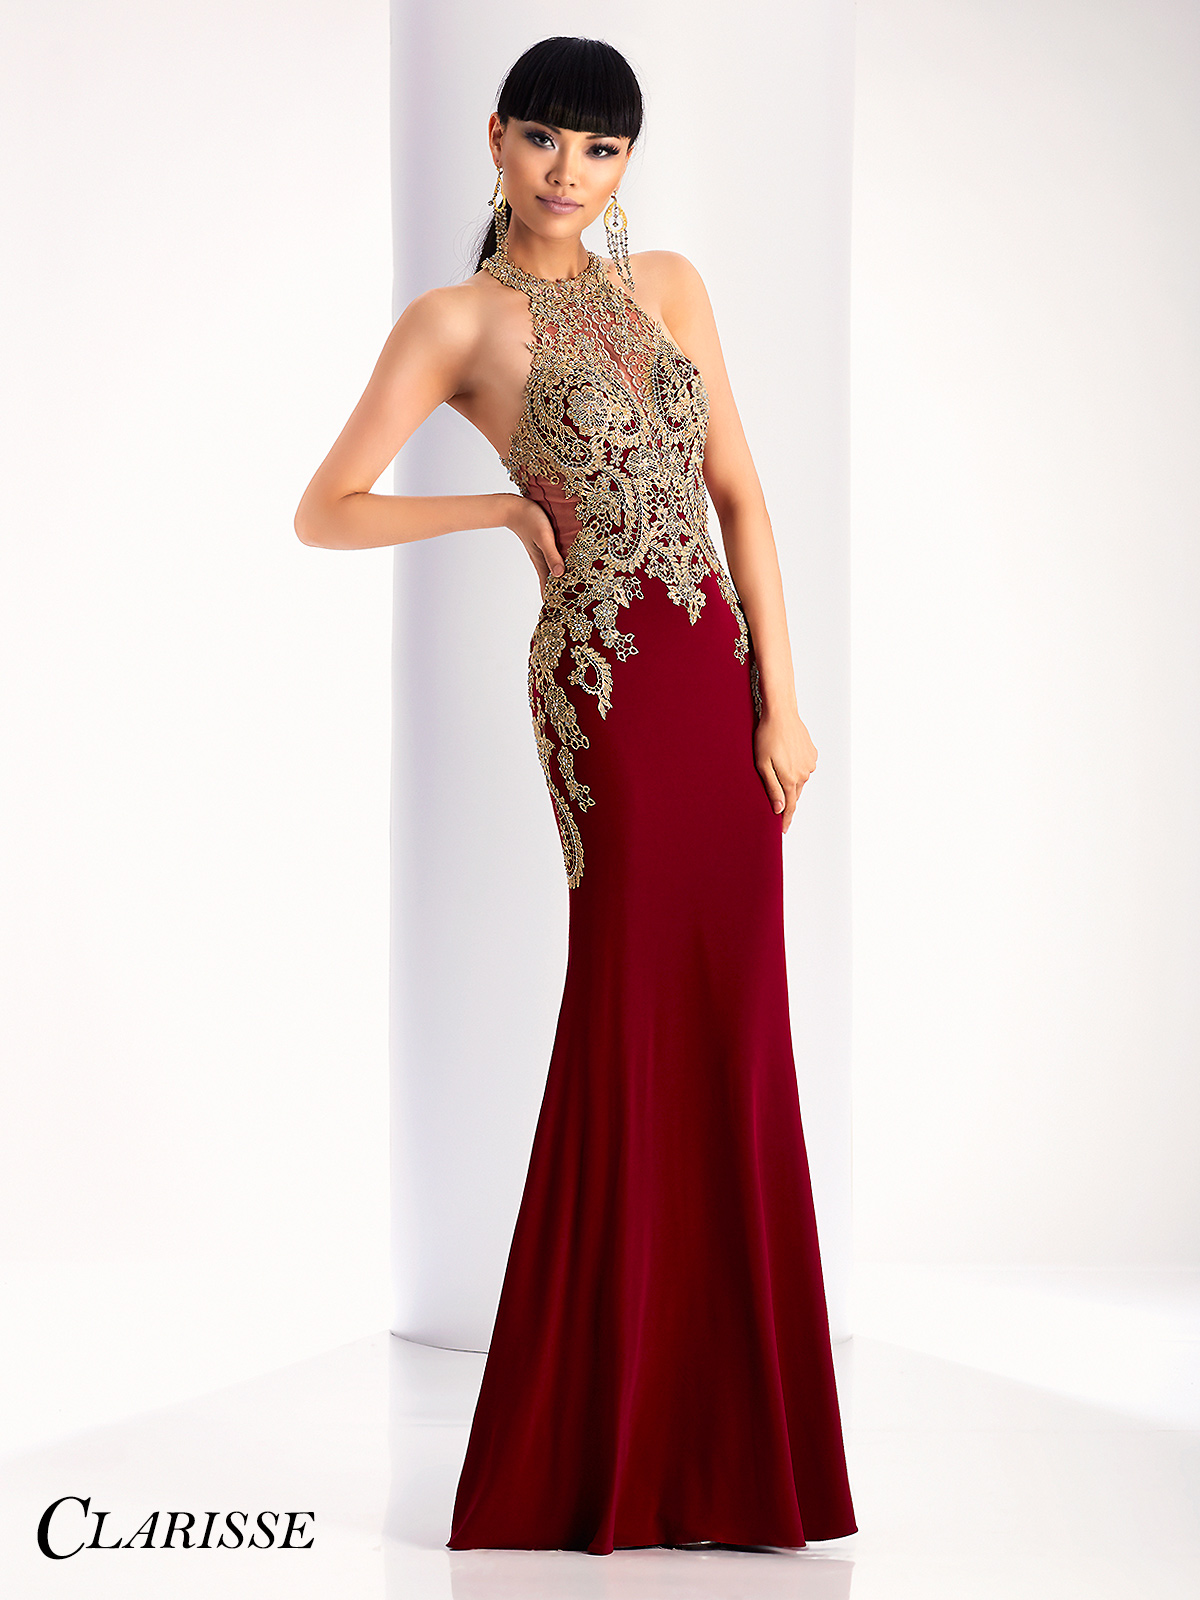 Clarisse Gold Lace Embellished Prom Dress 4819